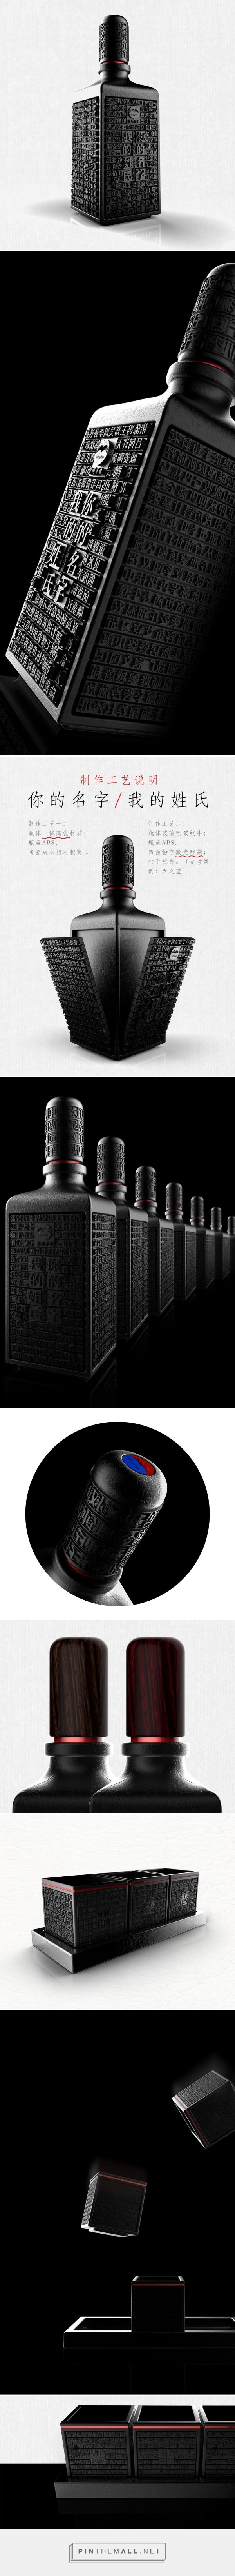 Chinese Seal Wine packaging design by Riliang Zhang - http://www.packagingoftheworld.com/2016/11/chinese-seal-wine-your-name-my-surname.html